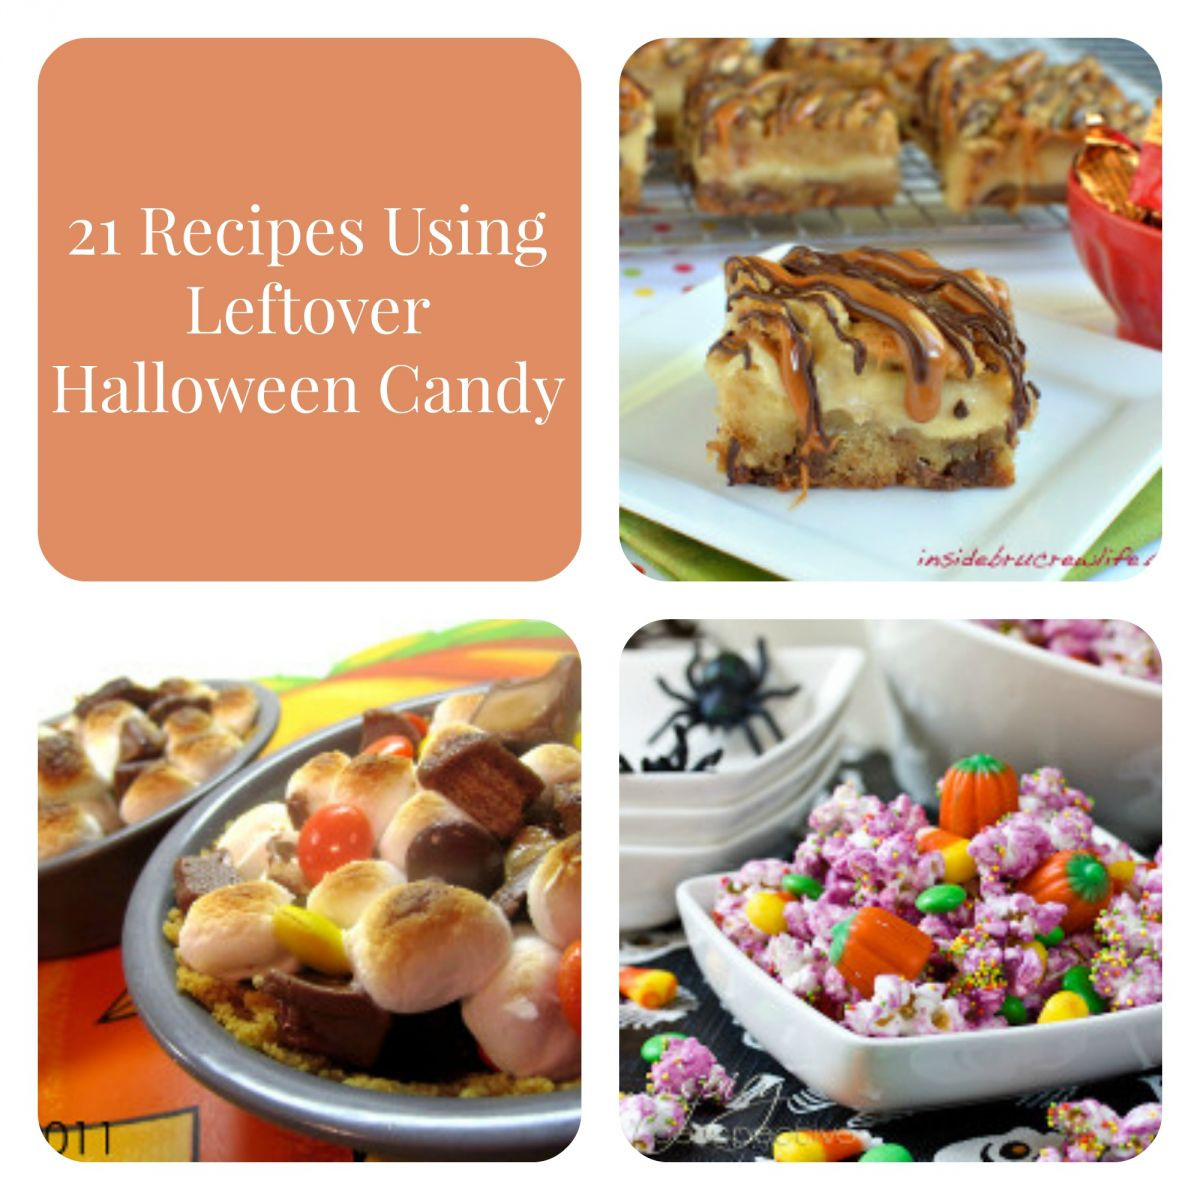 Leftover Halloween Candy Recipes  21 Recipes Using Leftover Halloween Candy